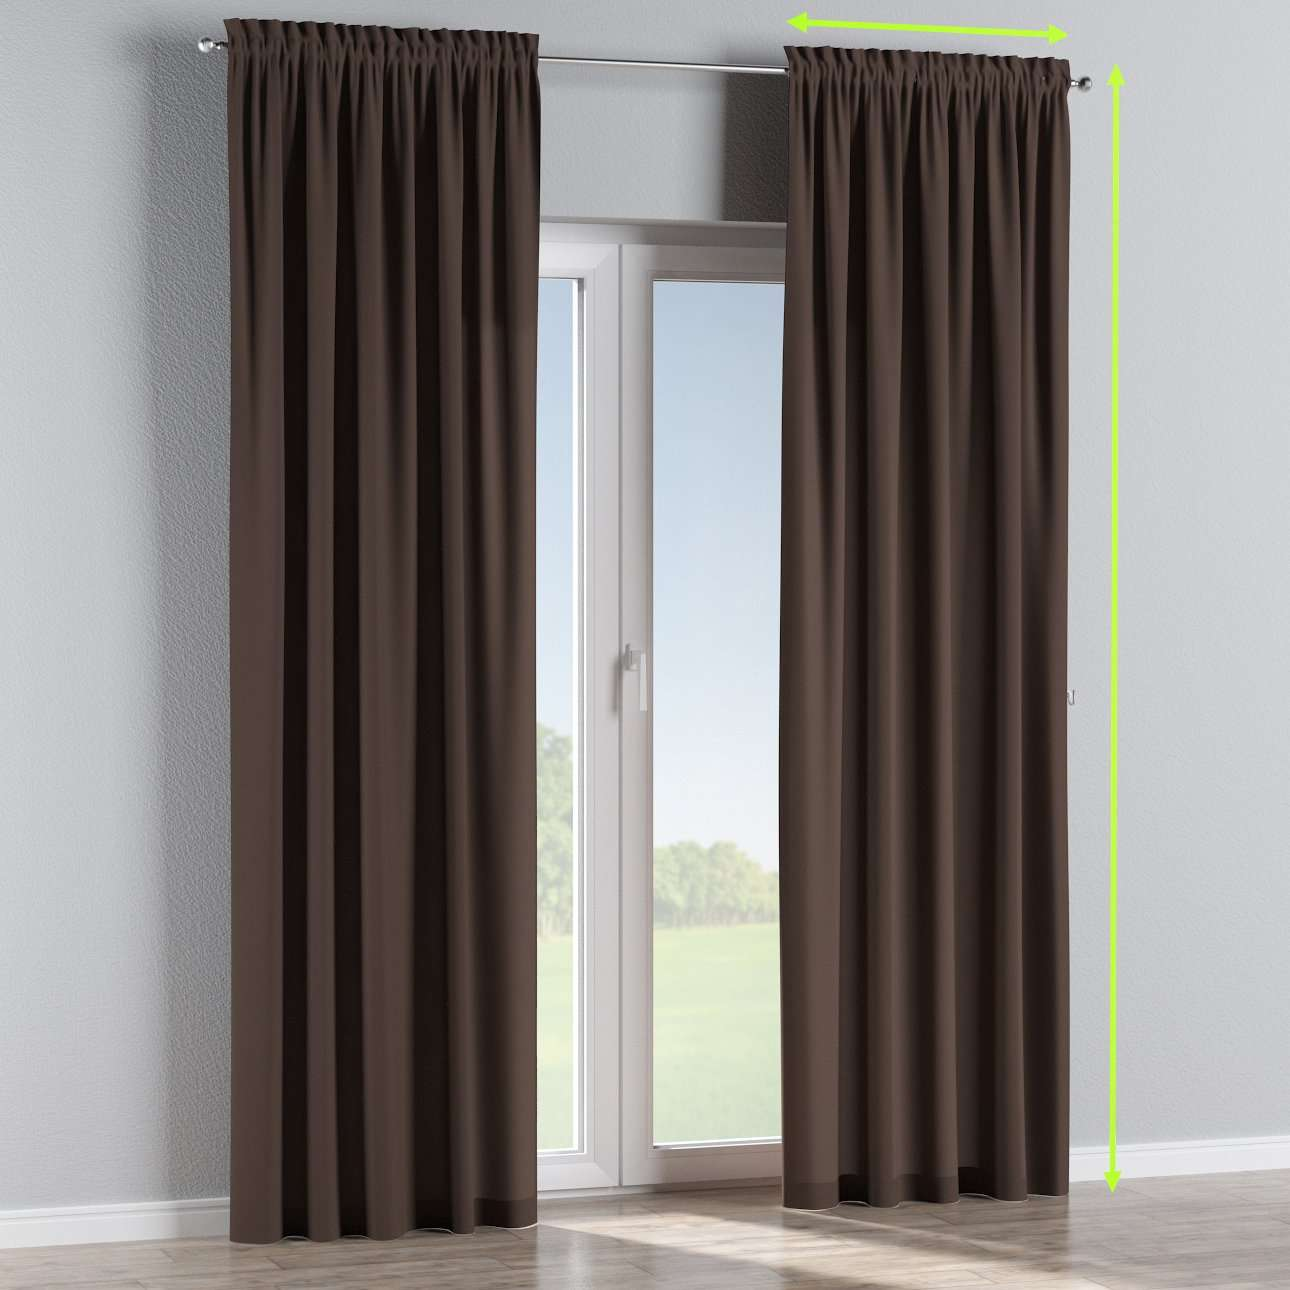 Slot and frill lined curtains in collection Cotton Panama, fabric: 702-03